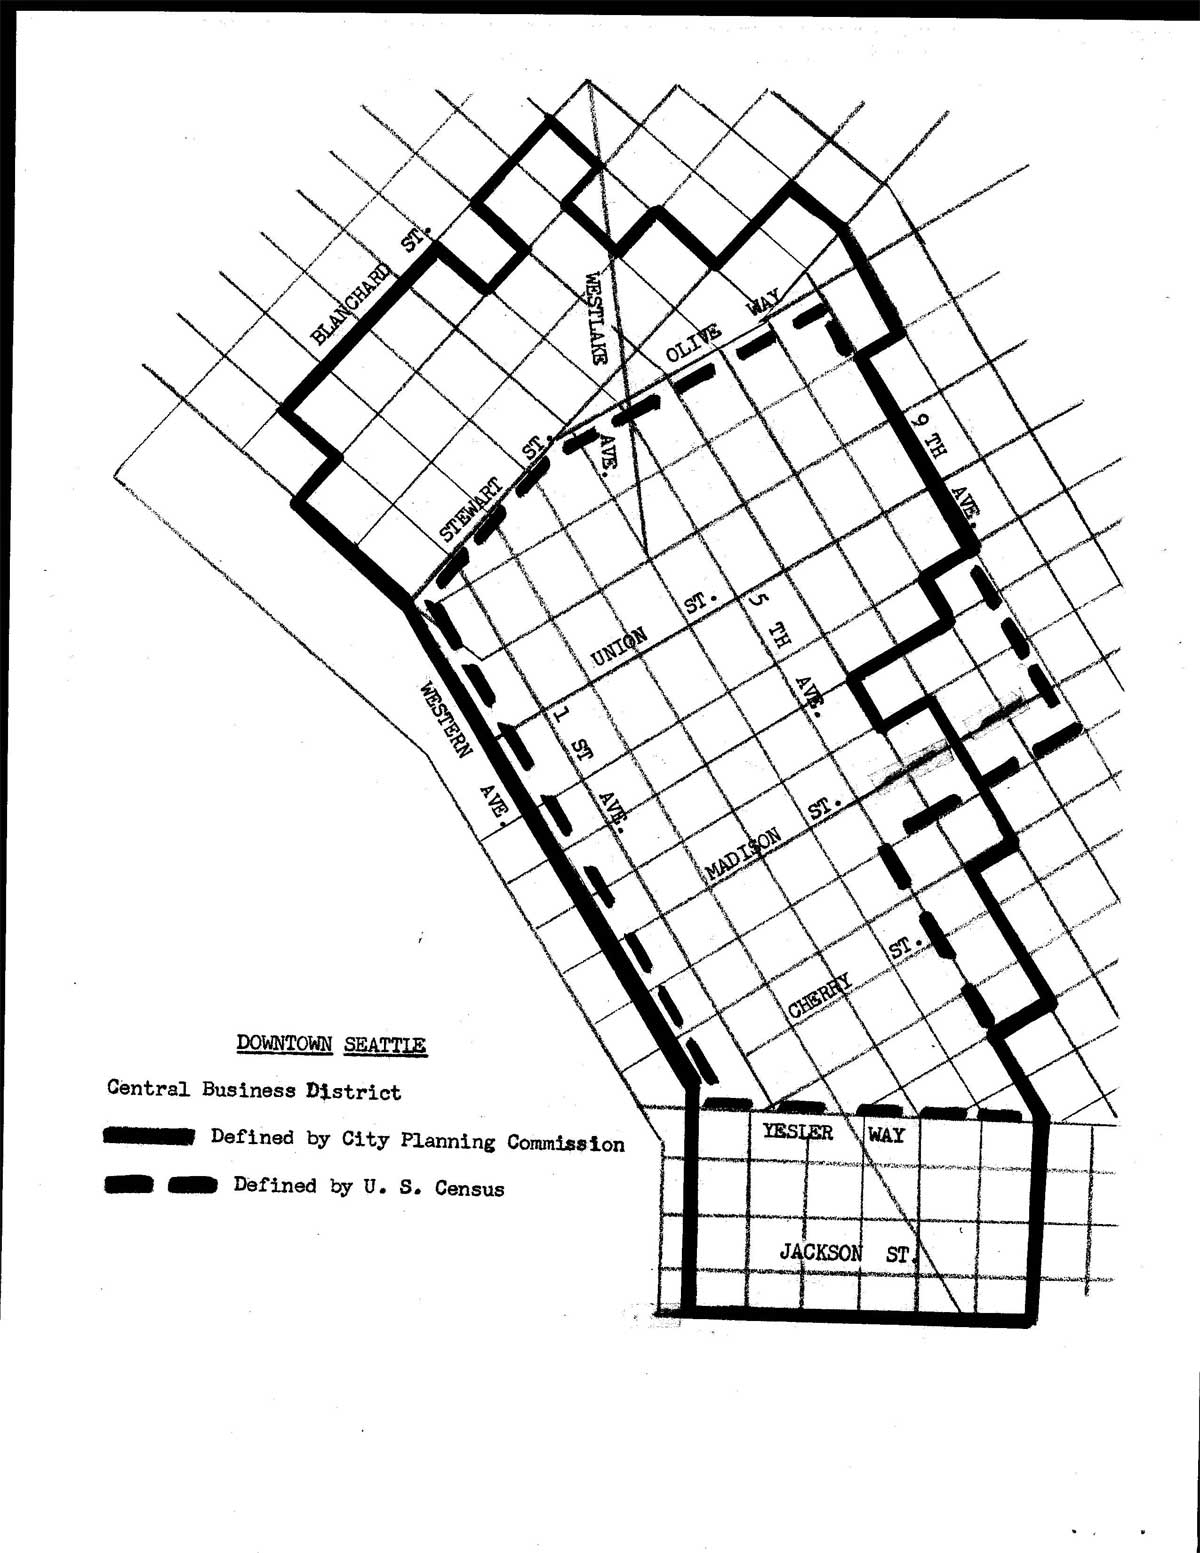 A map of downtown seattle where core planned its downtown employment c aign